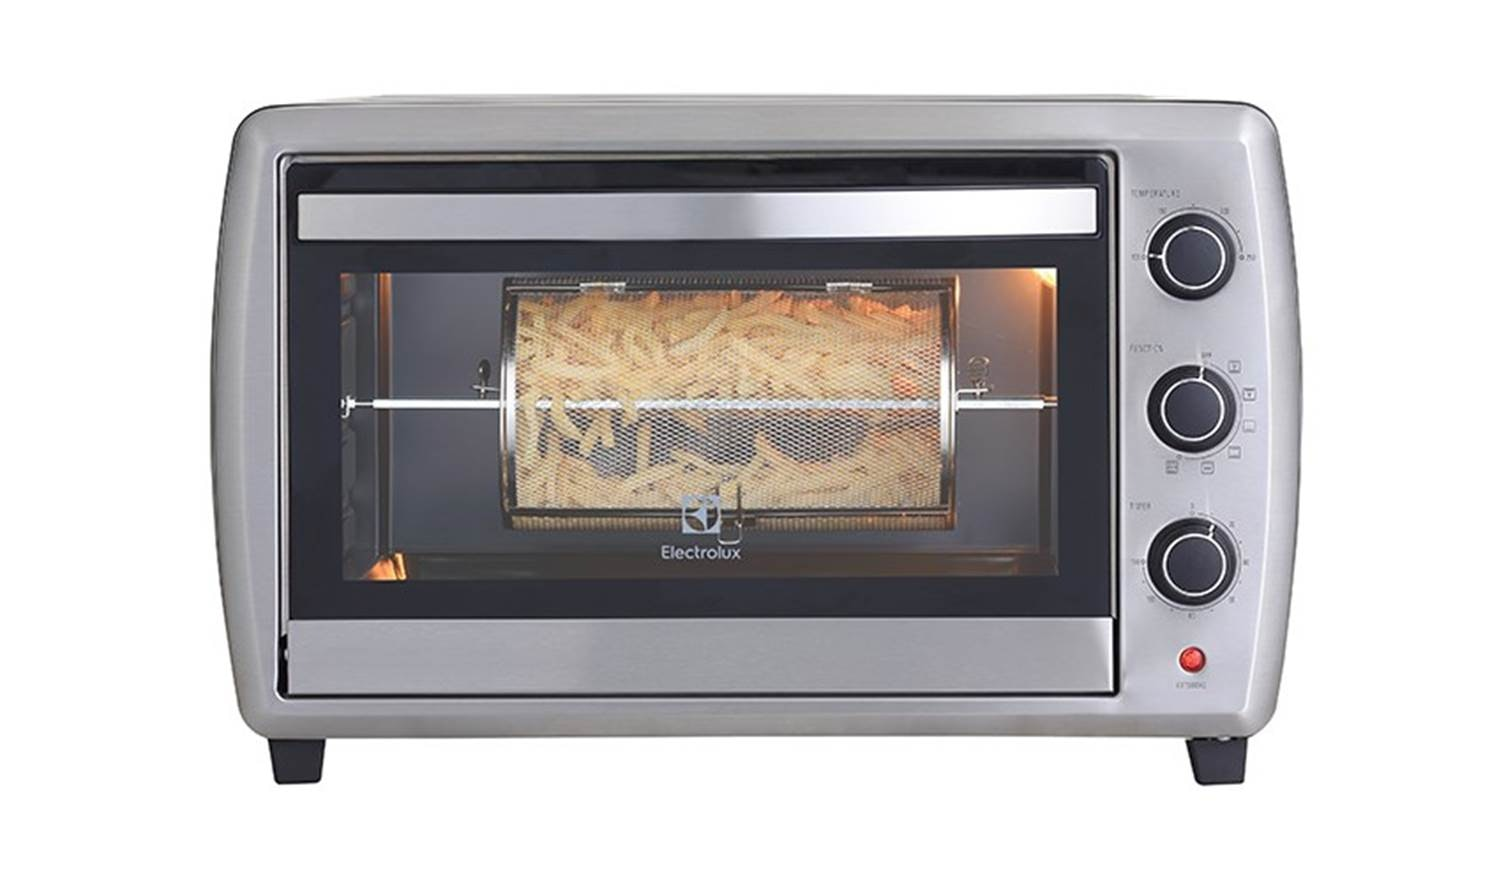 Electrolux Eot 56mxc Electric Oven Harvey Norman Singapore